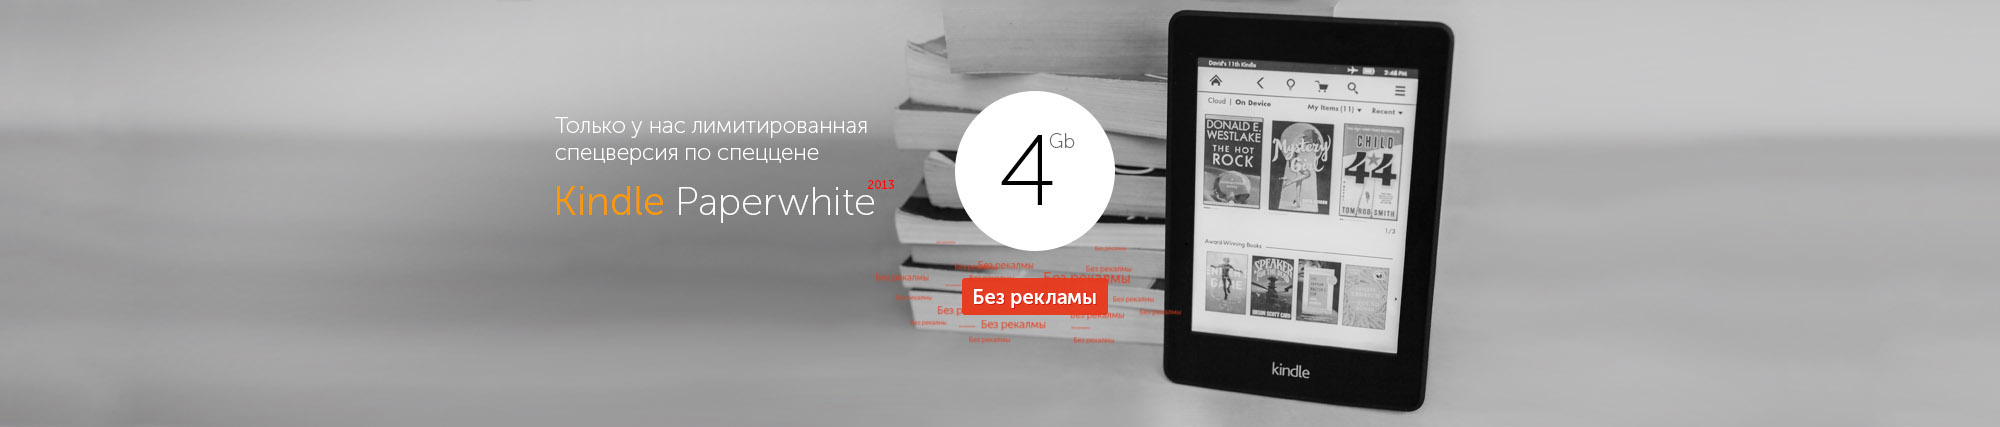 Kindle Paperwhite 2 (2013)